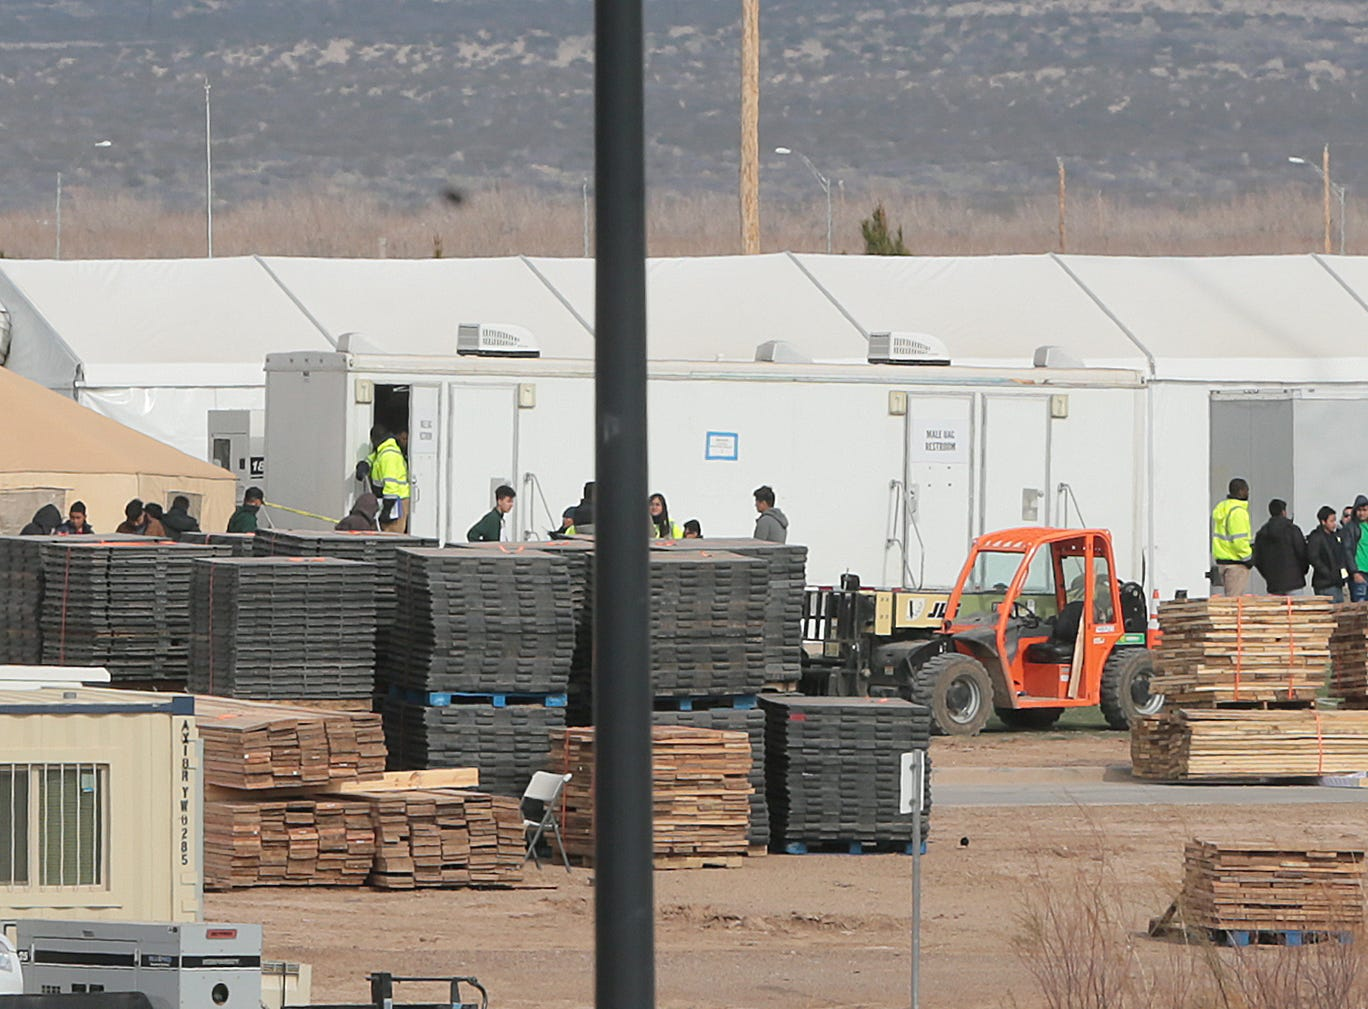 Many of the tents at the Tornillo detention center for migrant teens have been removed as the center prepares to close. It is estimated that less than 500 children remain at the camp.